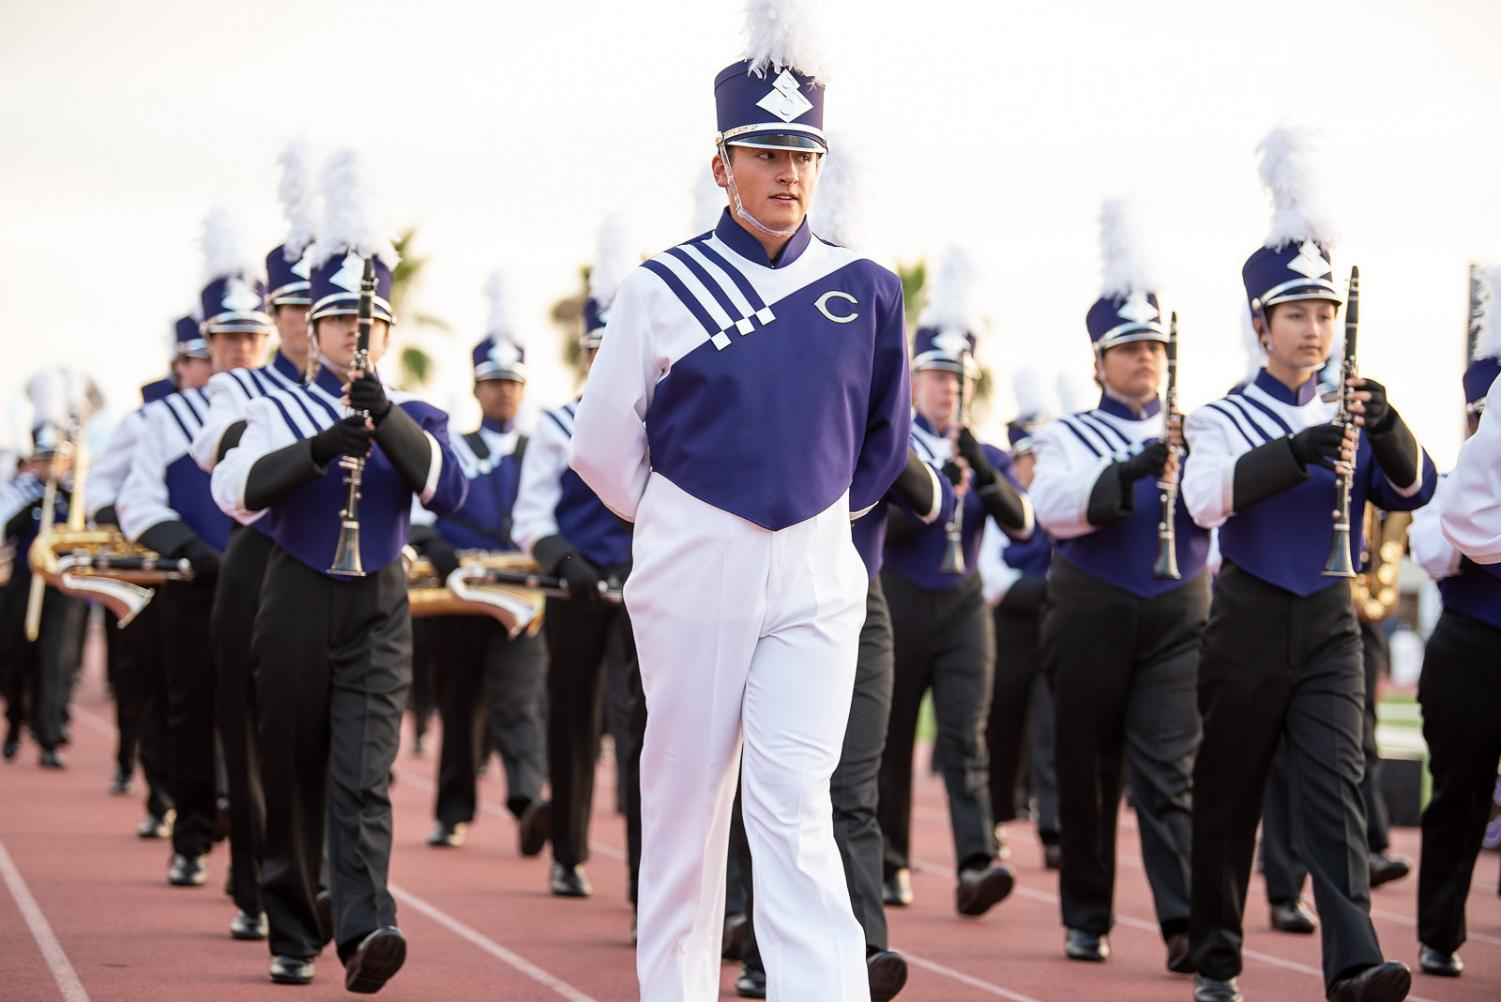 Ethan Prom, a band conductor at CHS, leads the band at different events and competitions.